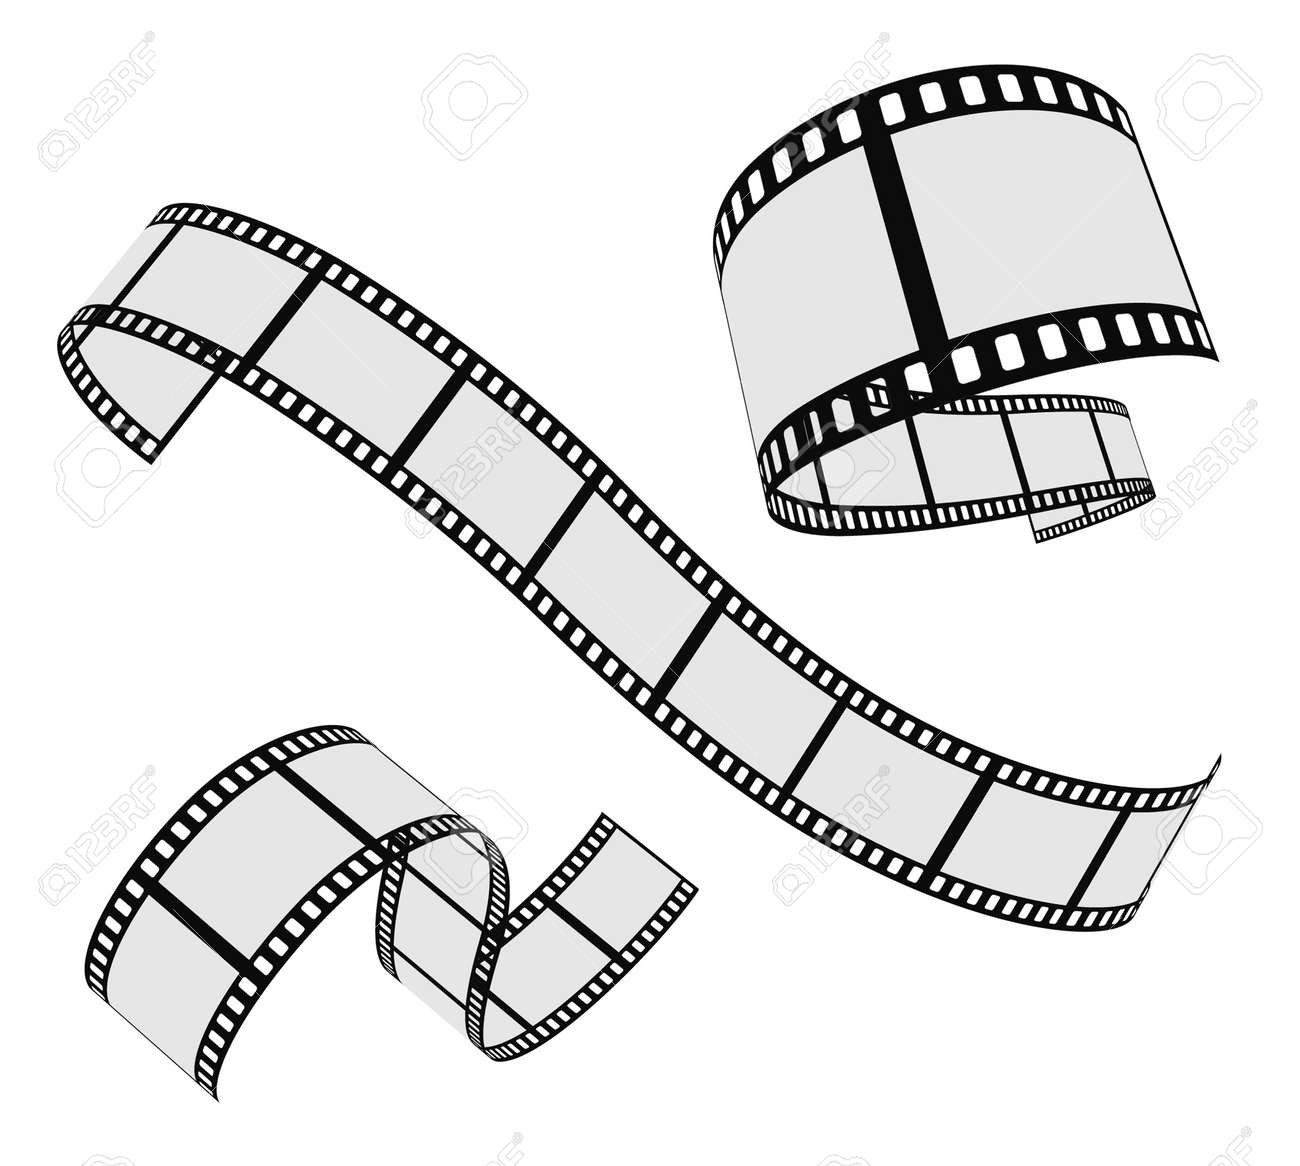 21,238 Filmstrip Stock Vector Illustration And Royalty Free ...